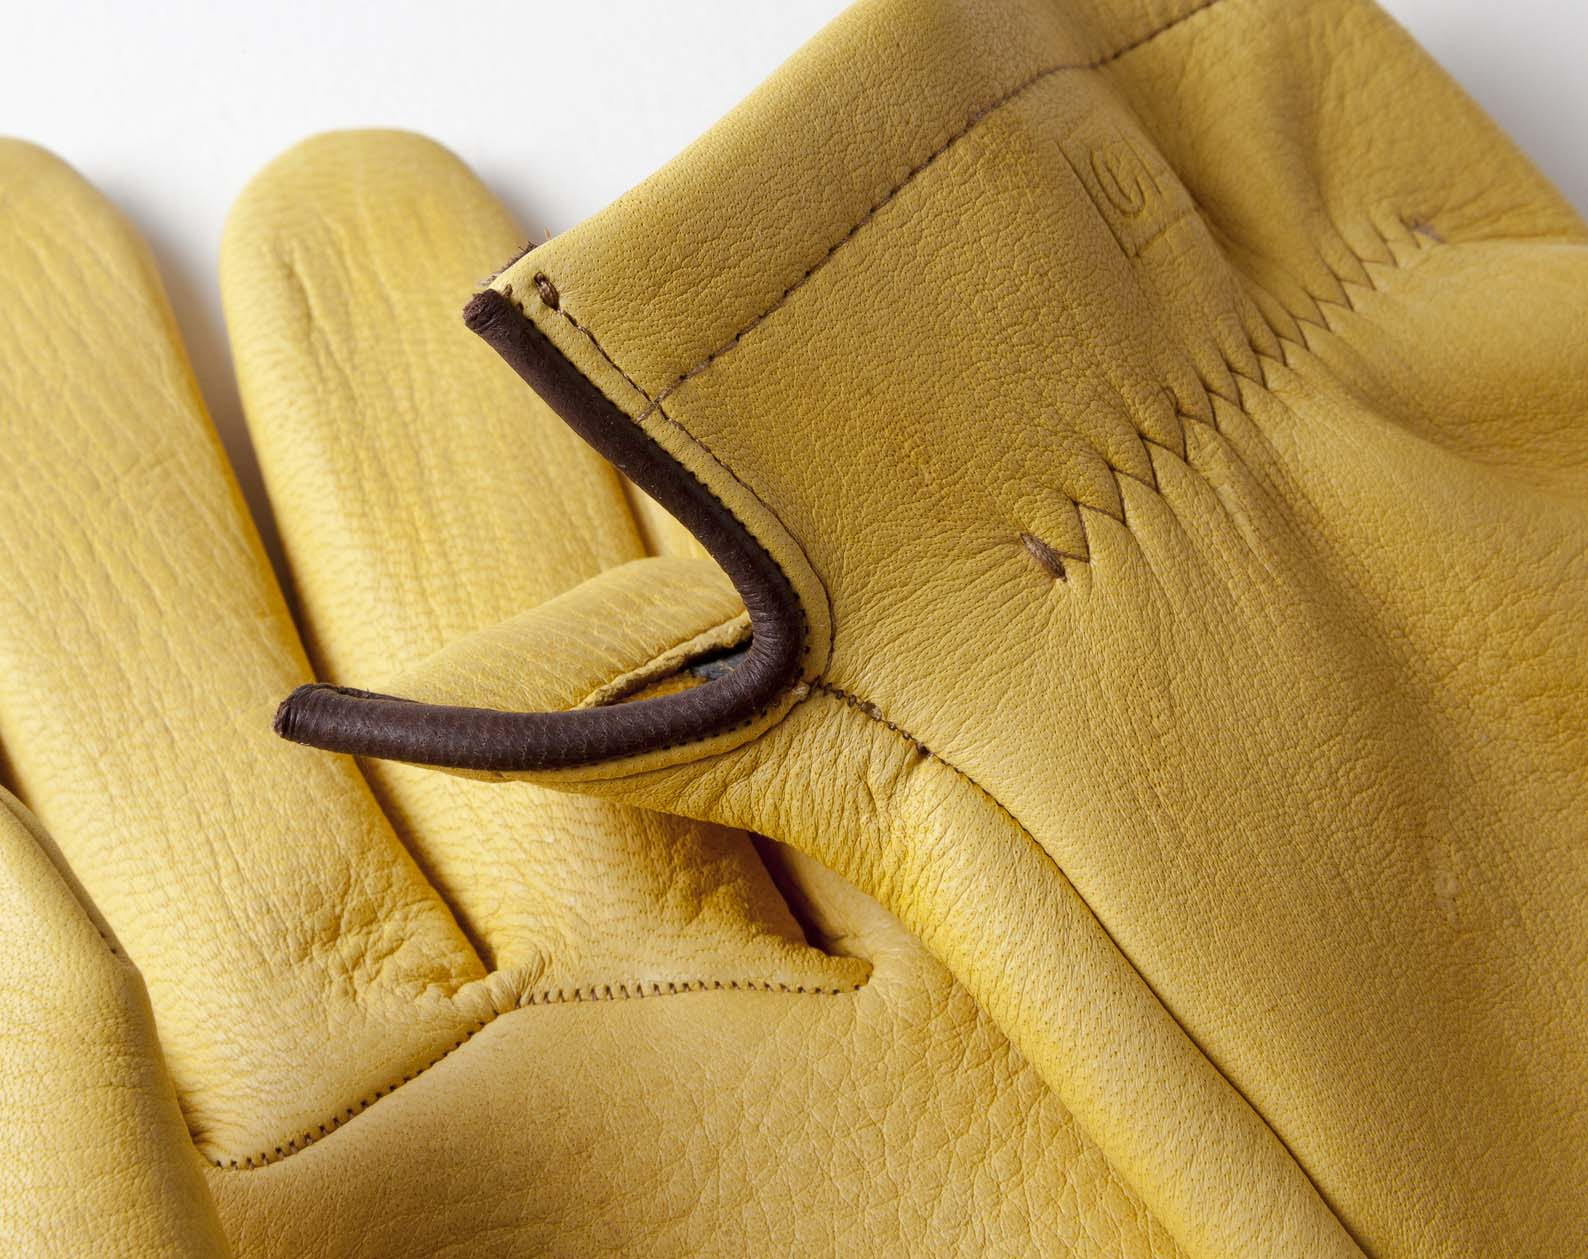 deerskin gloves handcrafted in Spain with special atention to details